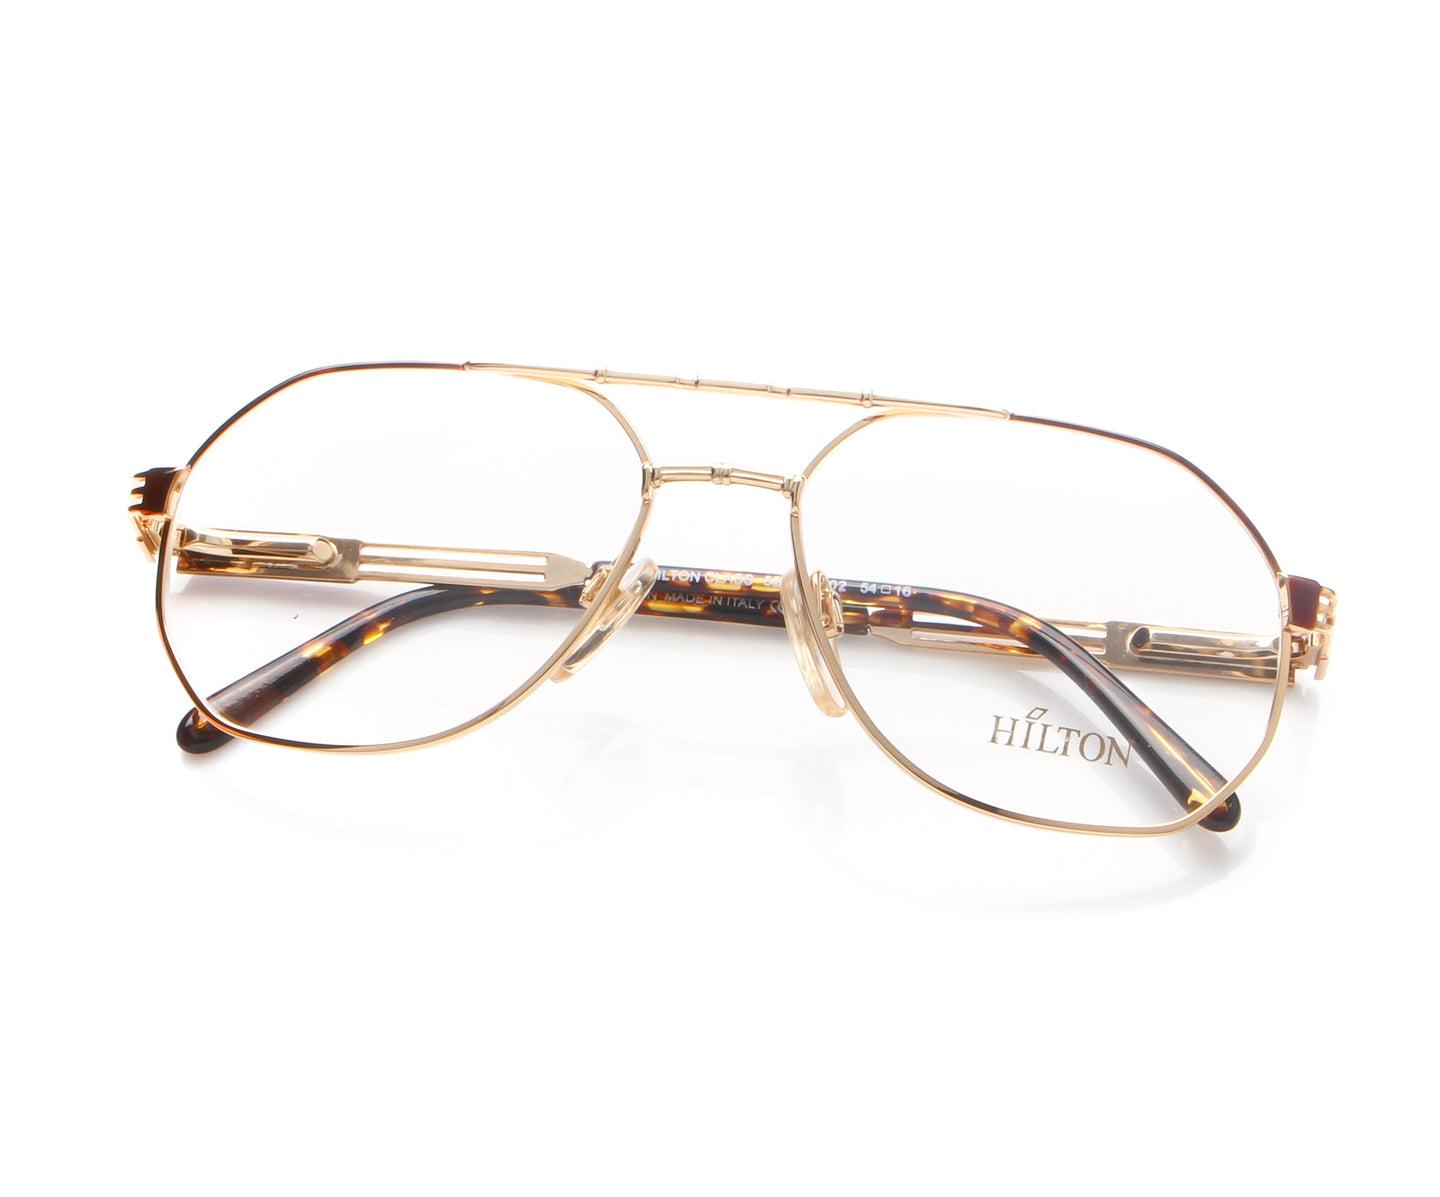 Vintage Hilton Class 52 02 22 KGP, Hilton , glasses frames, eyeglasses online, eyeglass frames, mens glasses, womens glasses, buy glasses online, designer eyeglasses, vintage sunglasses, retro sunglasses, vintage glasses, sunglass, eyeglass, glasses, lens, vintage frames company, vf